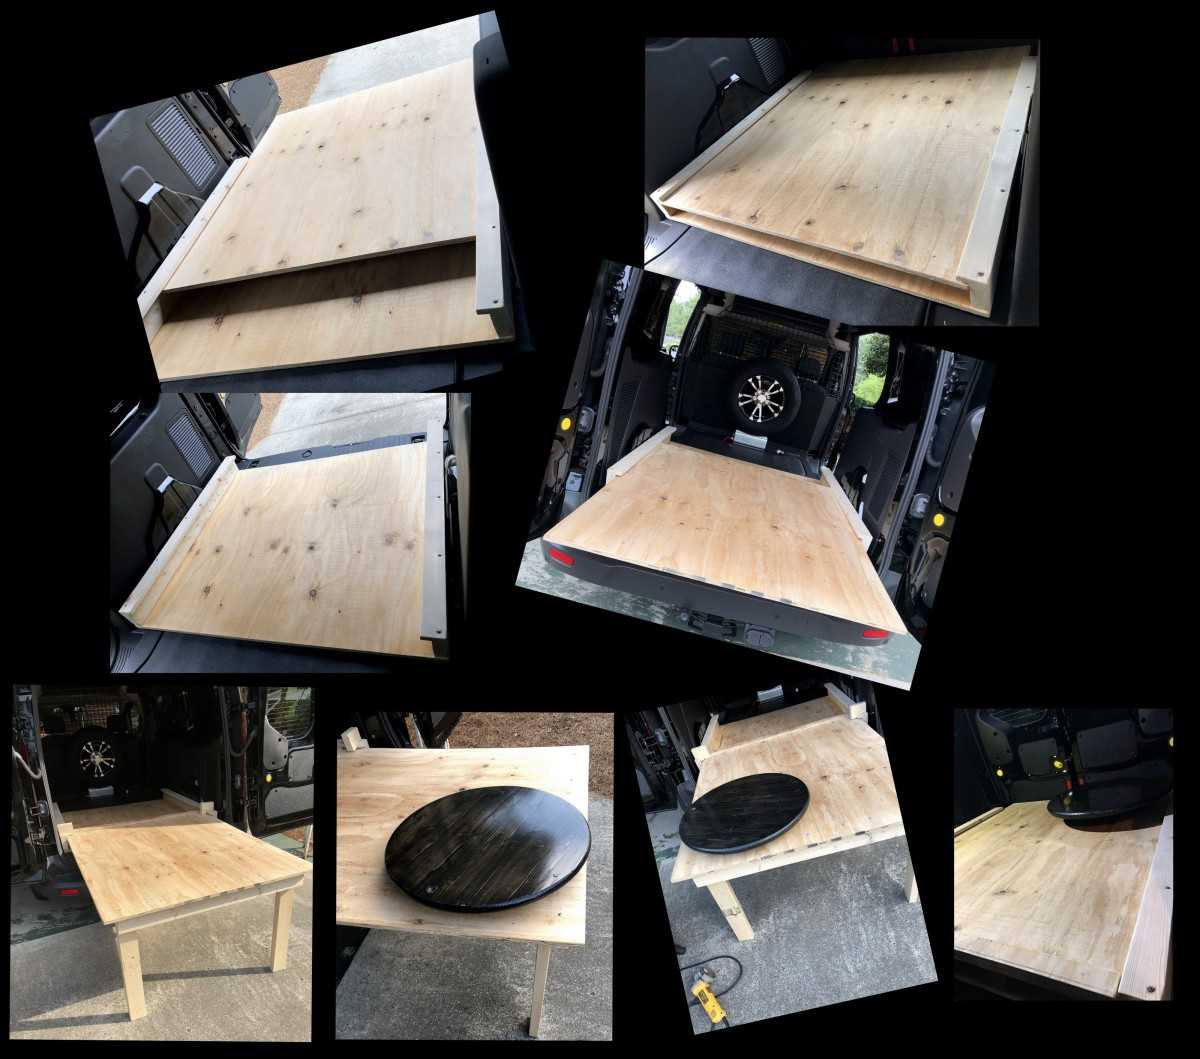 DIY ~ Ford Transit Connect XLT Van [rollout kitchen] versus Micro-Lite Cargo-Go Lite Xtreme Trailer Cooktop & Sink, 06/21